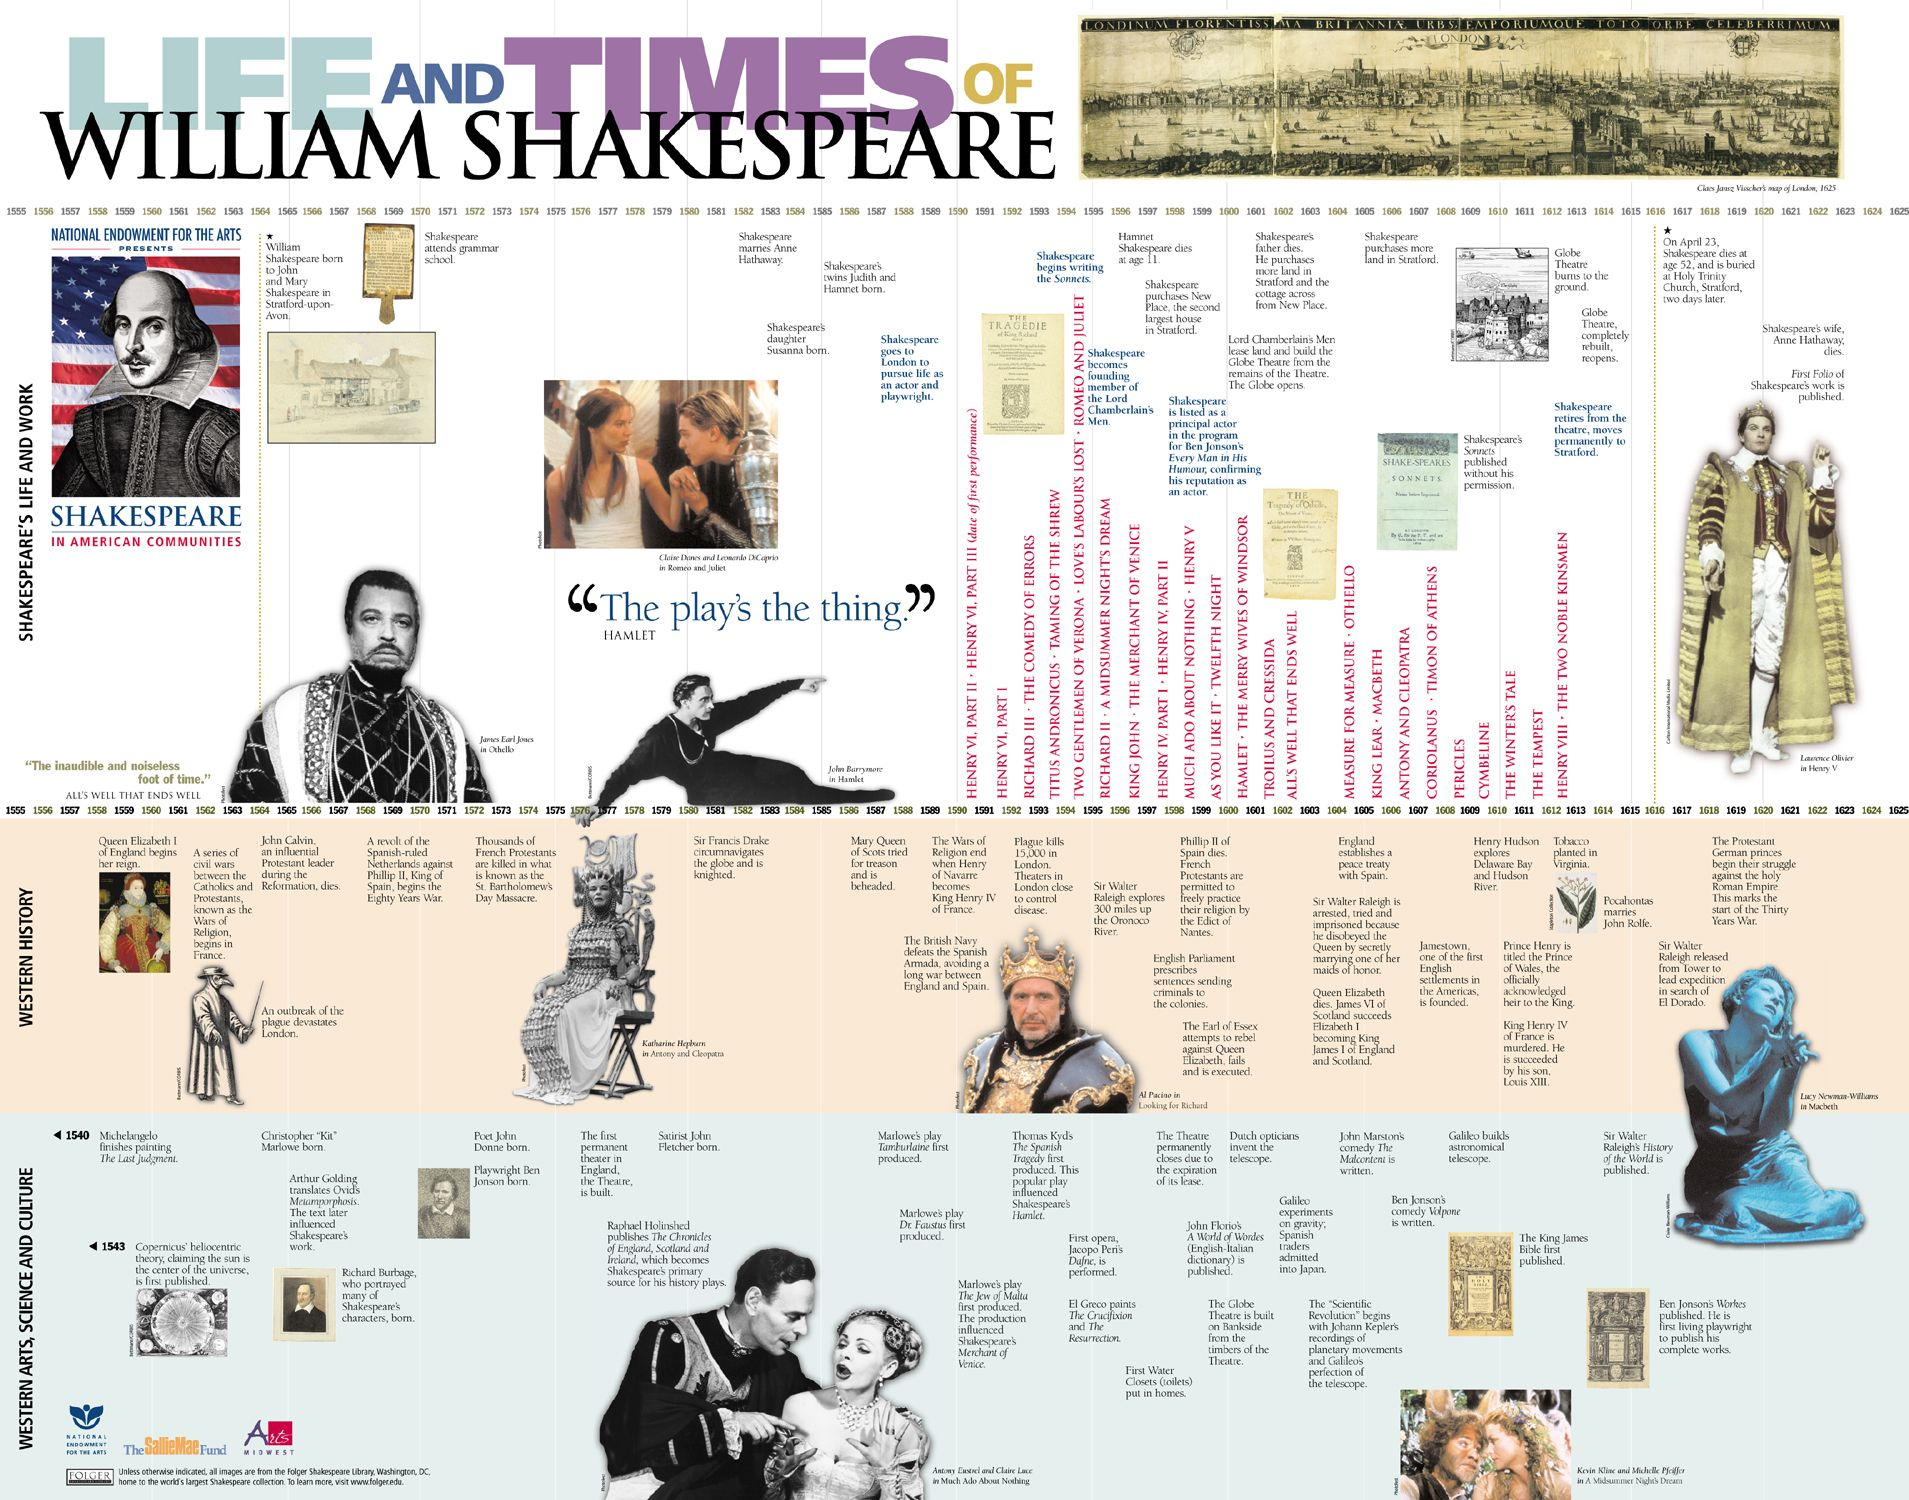 This Graphic Shows A Timeline Of Shakespeare S Works And